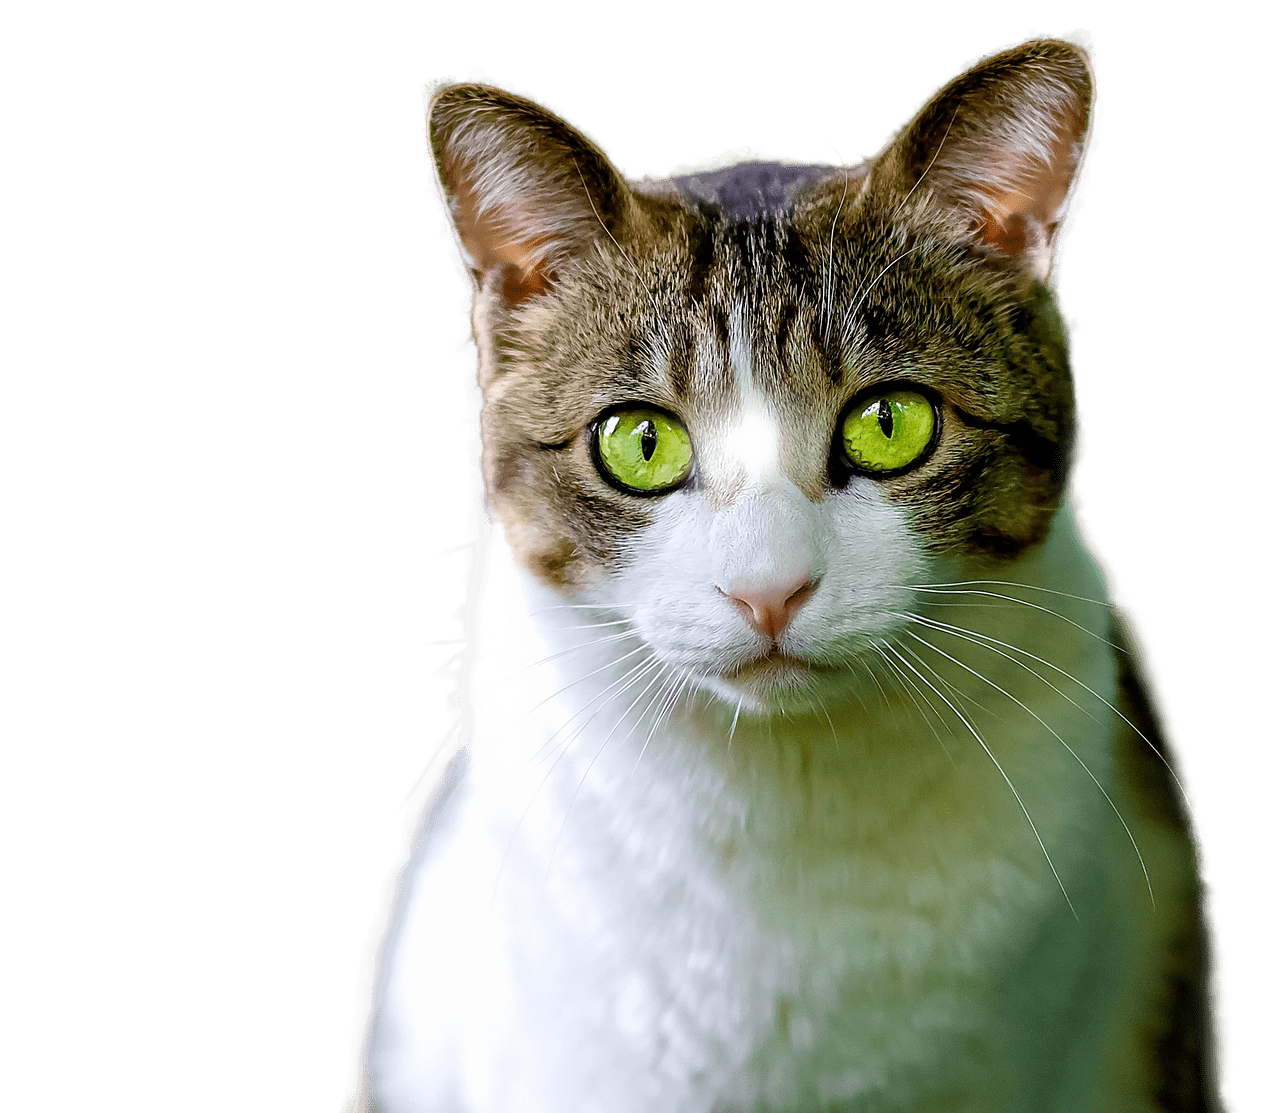 Transparent stickpng. Green cat eyes png banner royalty free